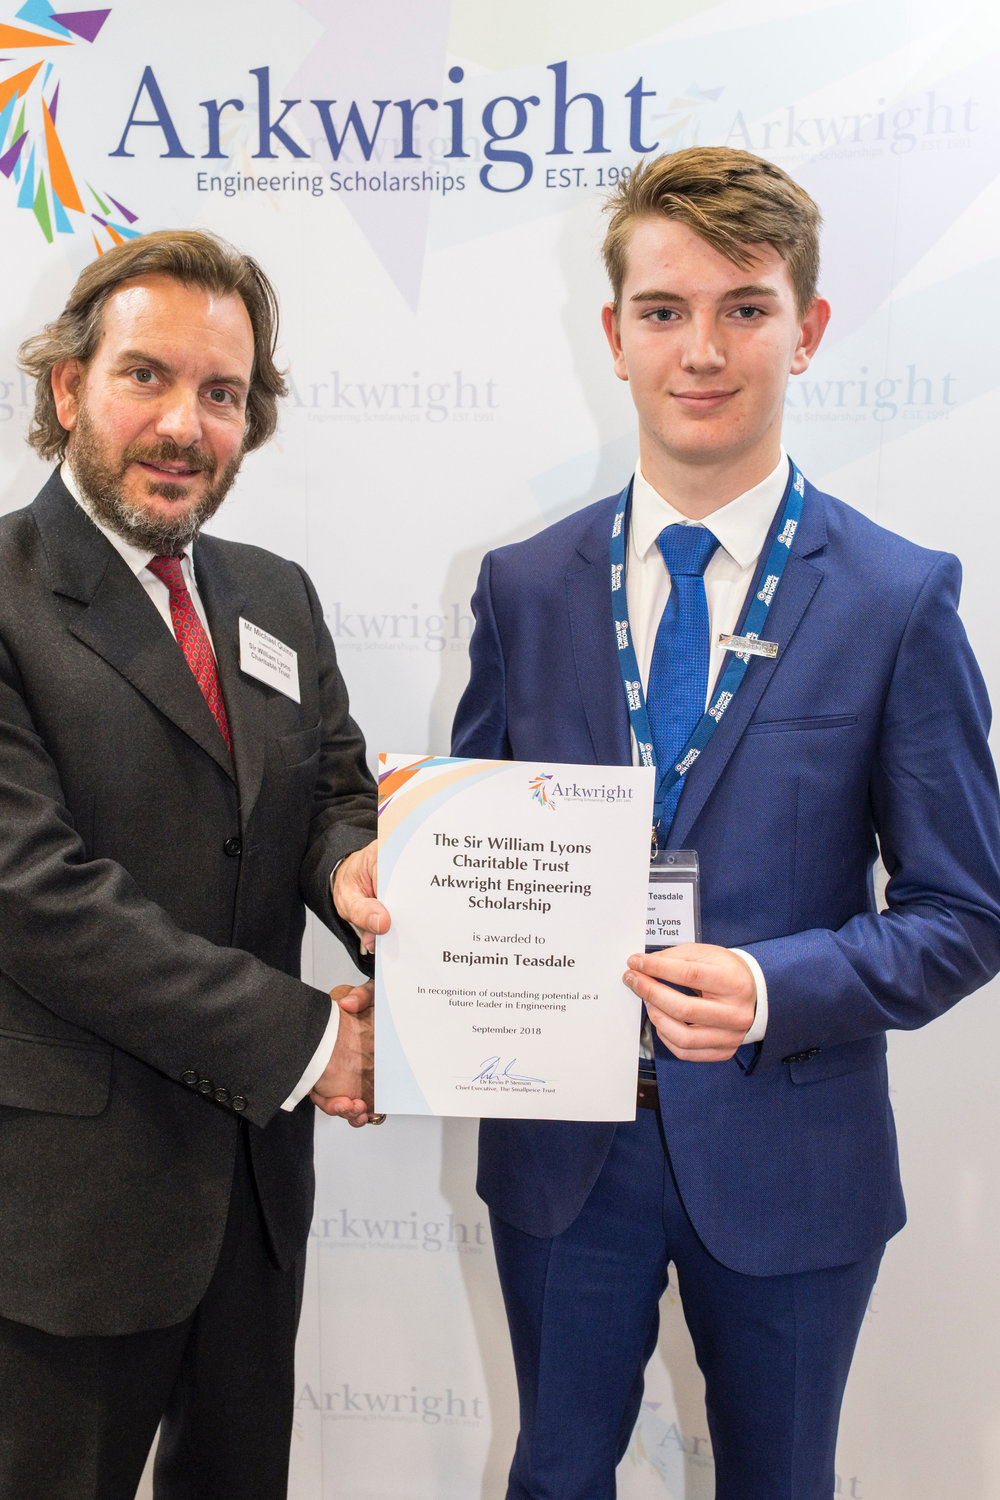 Ben Teasdale receiving his certificate